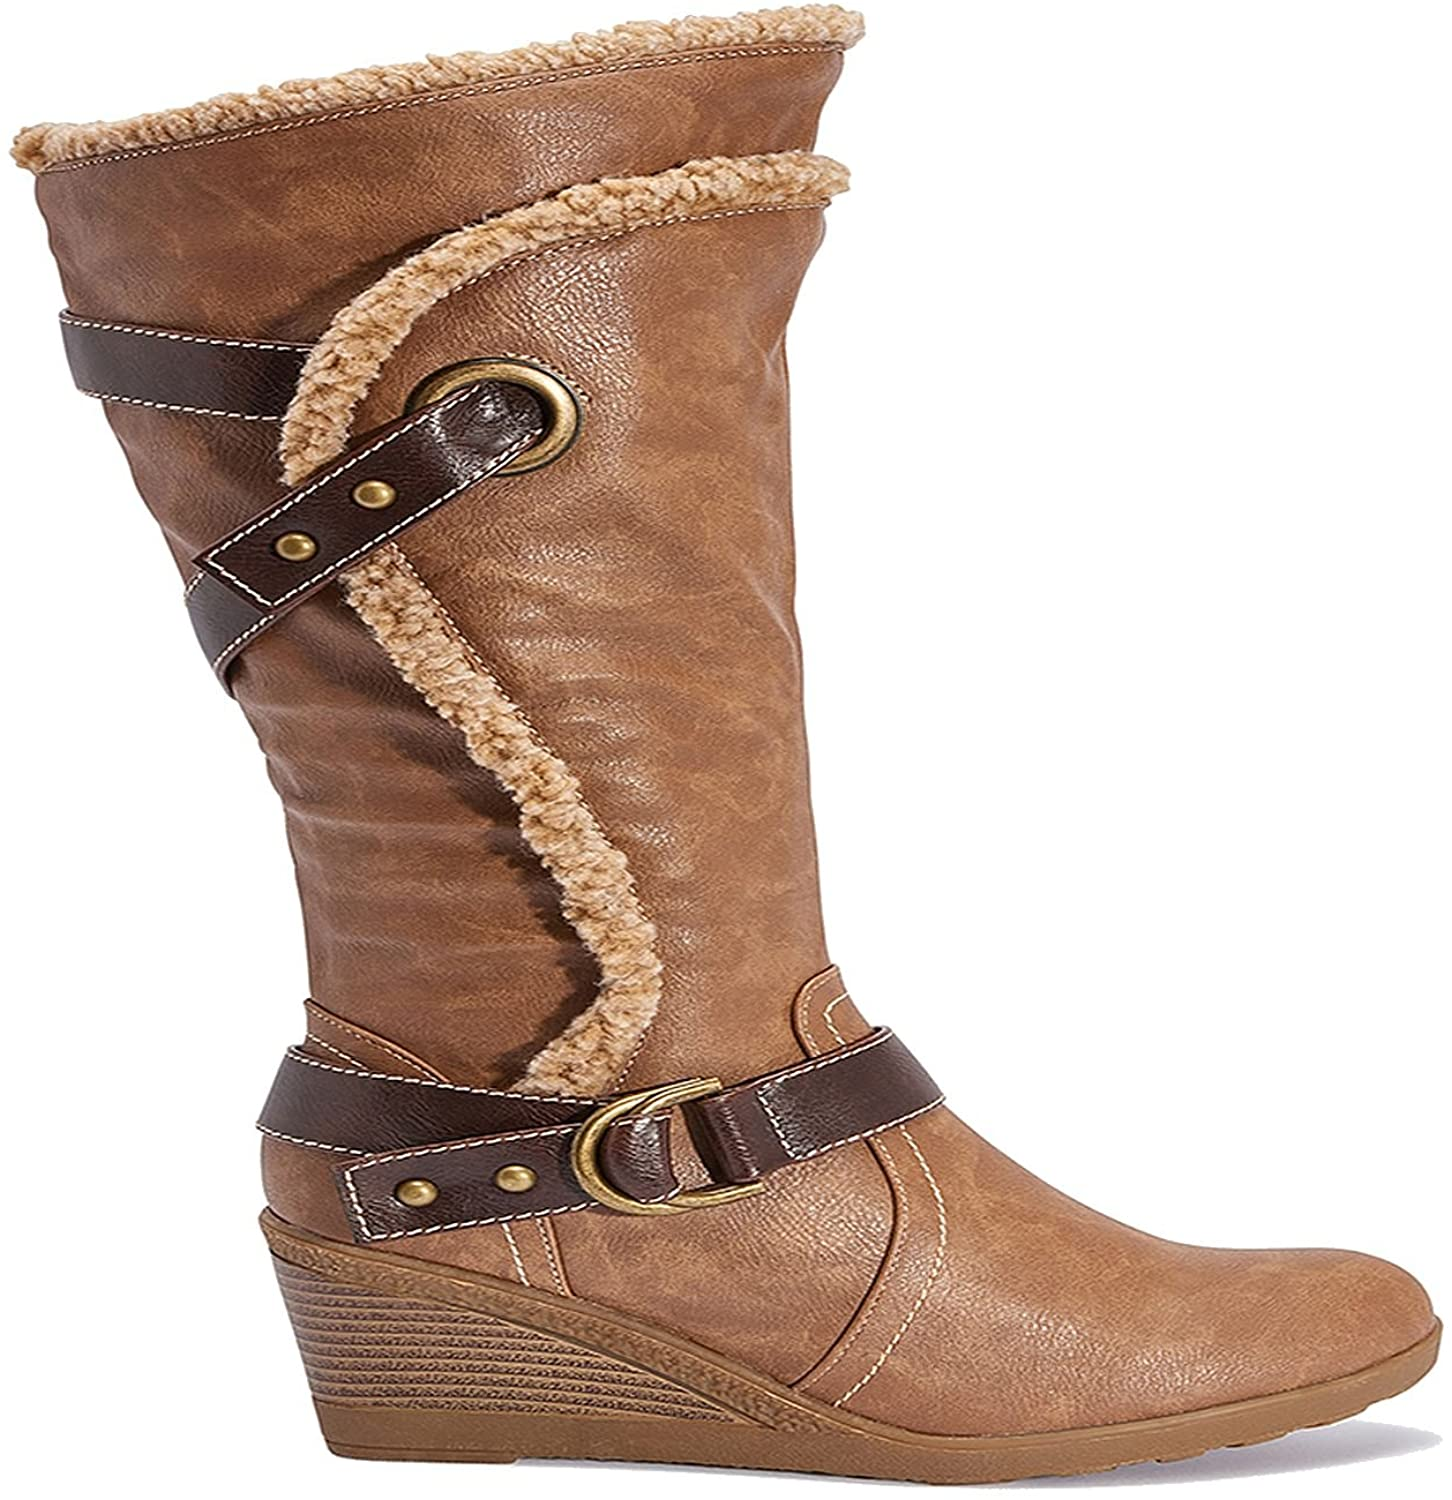 TRUFFLE COLLECTION Ladies Calf Height, Casual Wedge Heel Boots